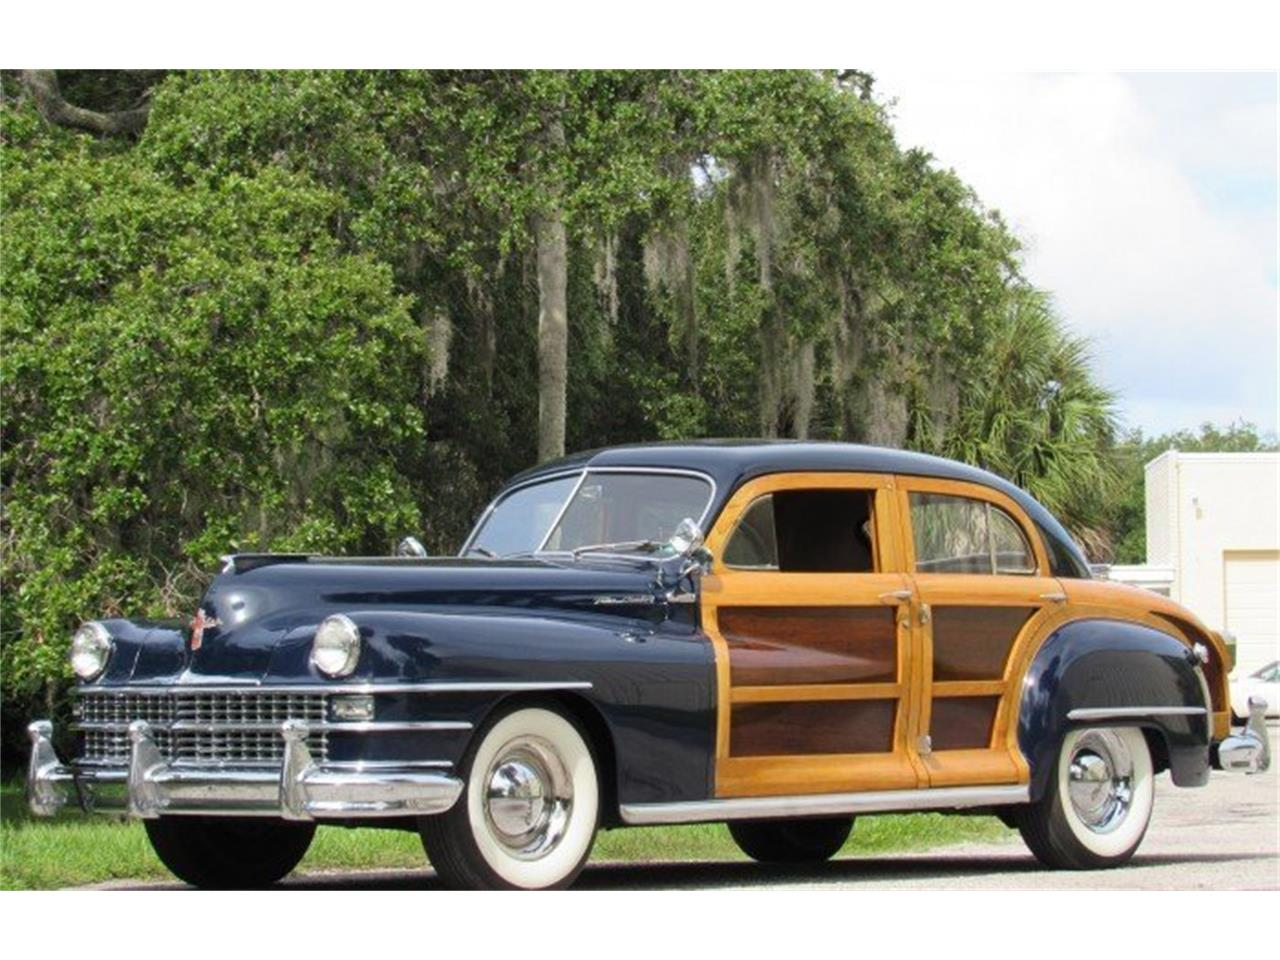 Large Picture of Classic '48 Chrysler Town & Country located in Punta Gorda Florida Auction Vehicle - PH12